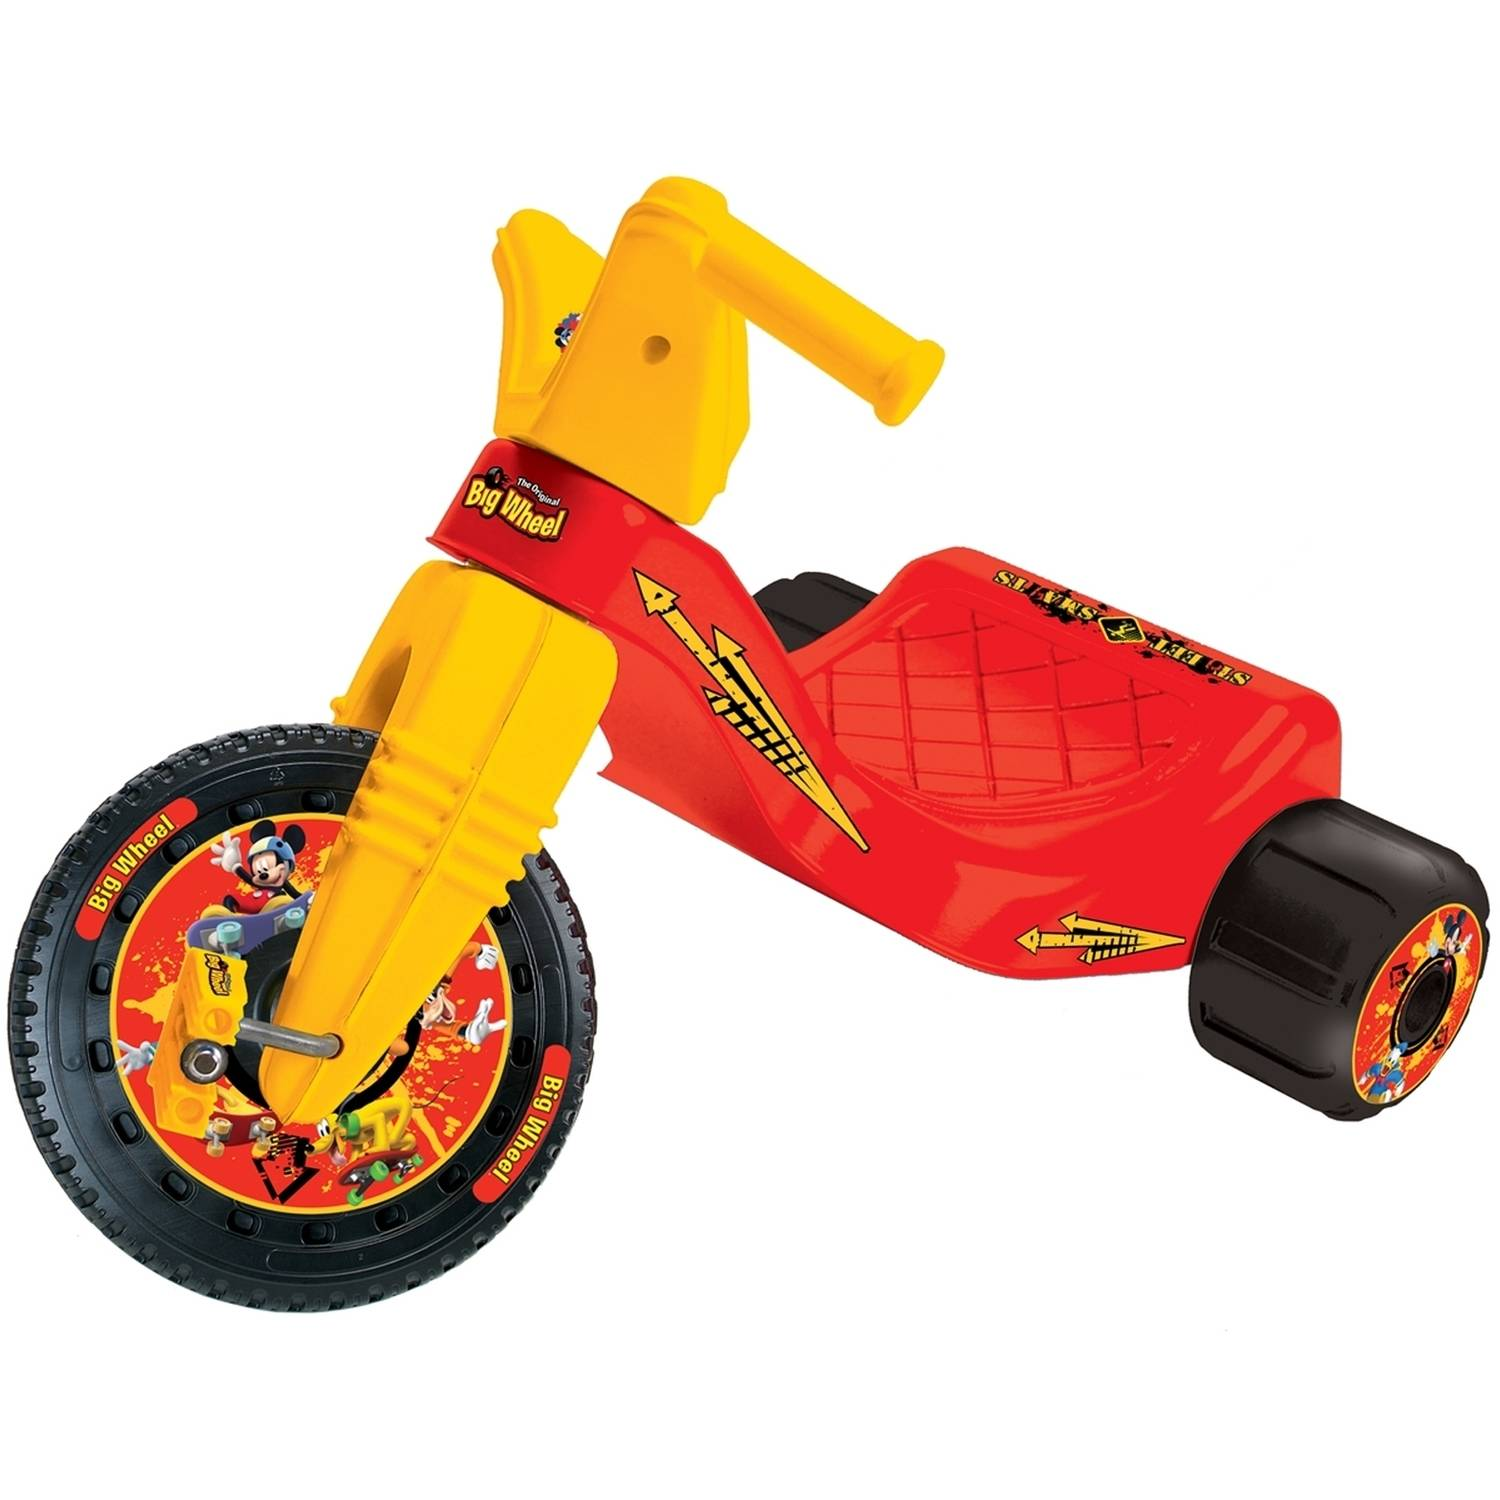 Disney Mickey Mouse Sk8 Park Big Wheel Junior Rider